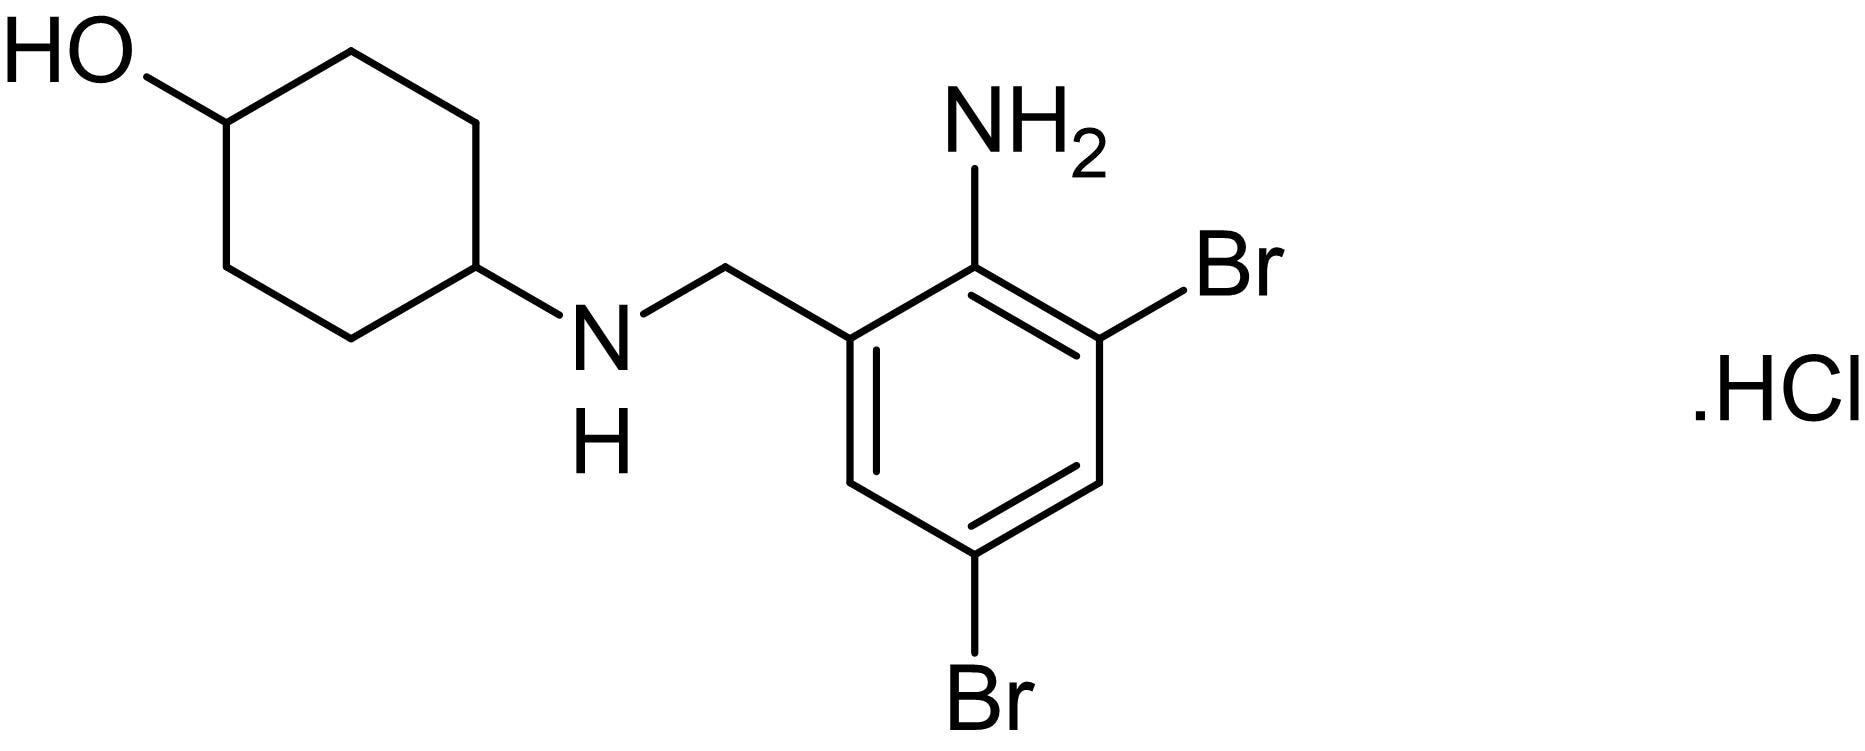 Chemical Structure - Ambroxol hydrochloride, Na<sup>+&nbsp;</sup>channel blocker (ab141778)